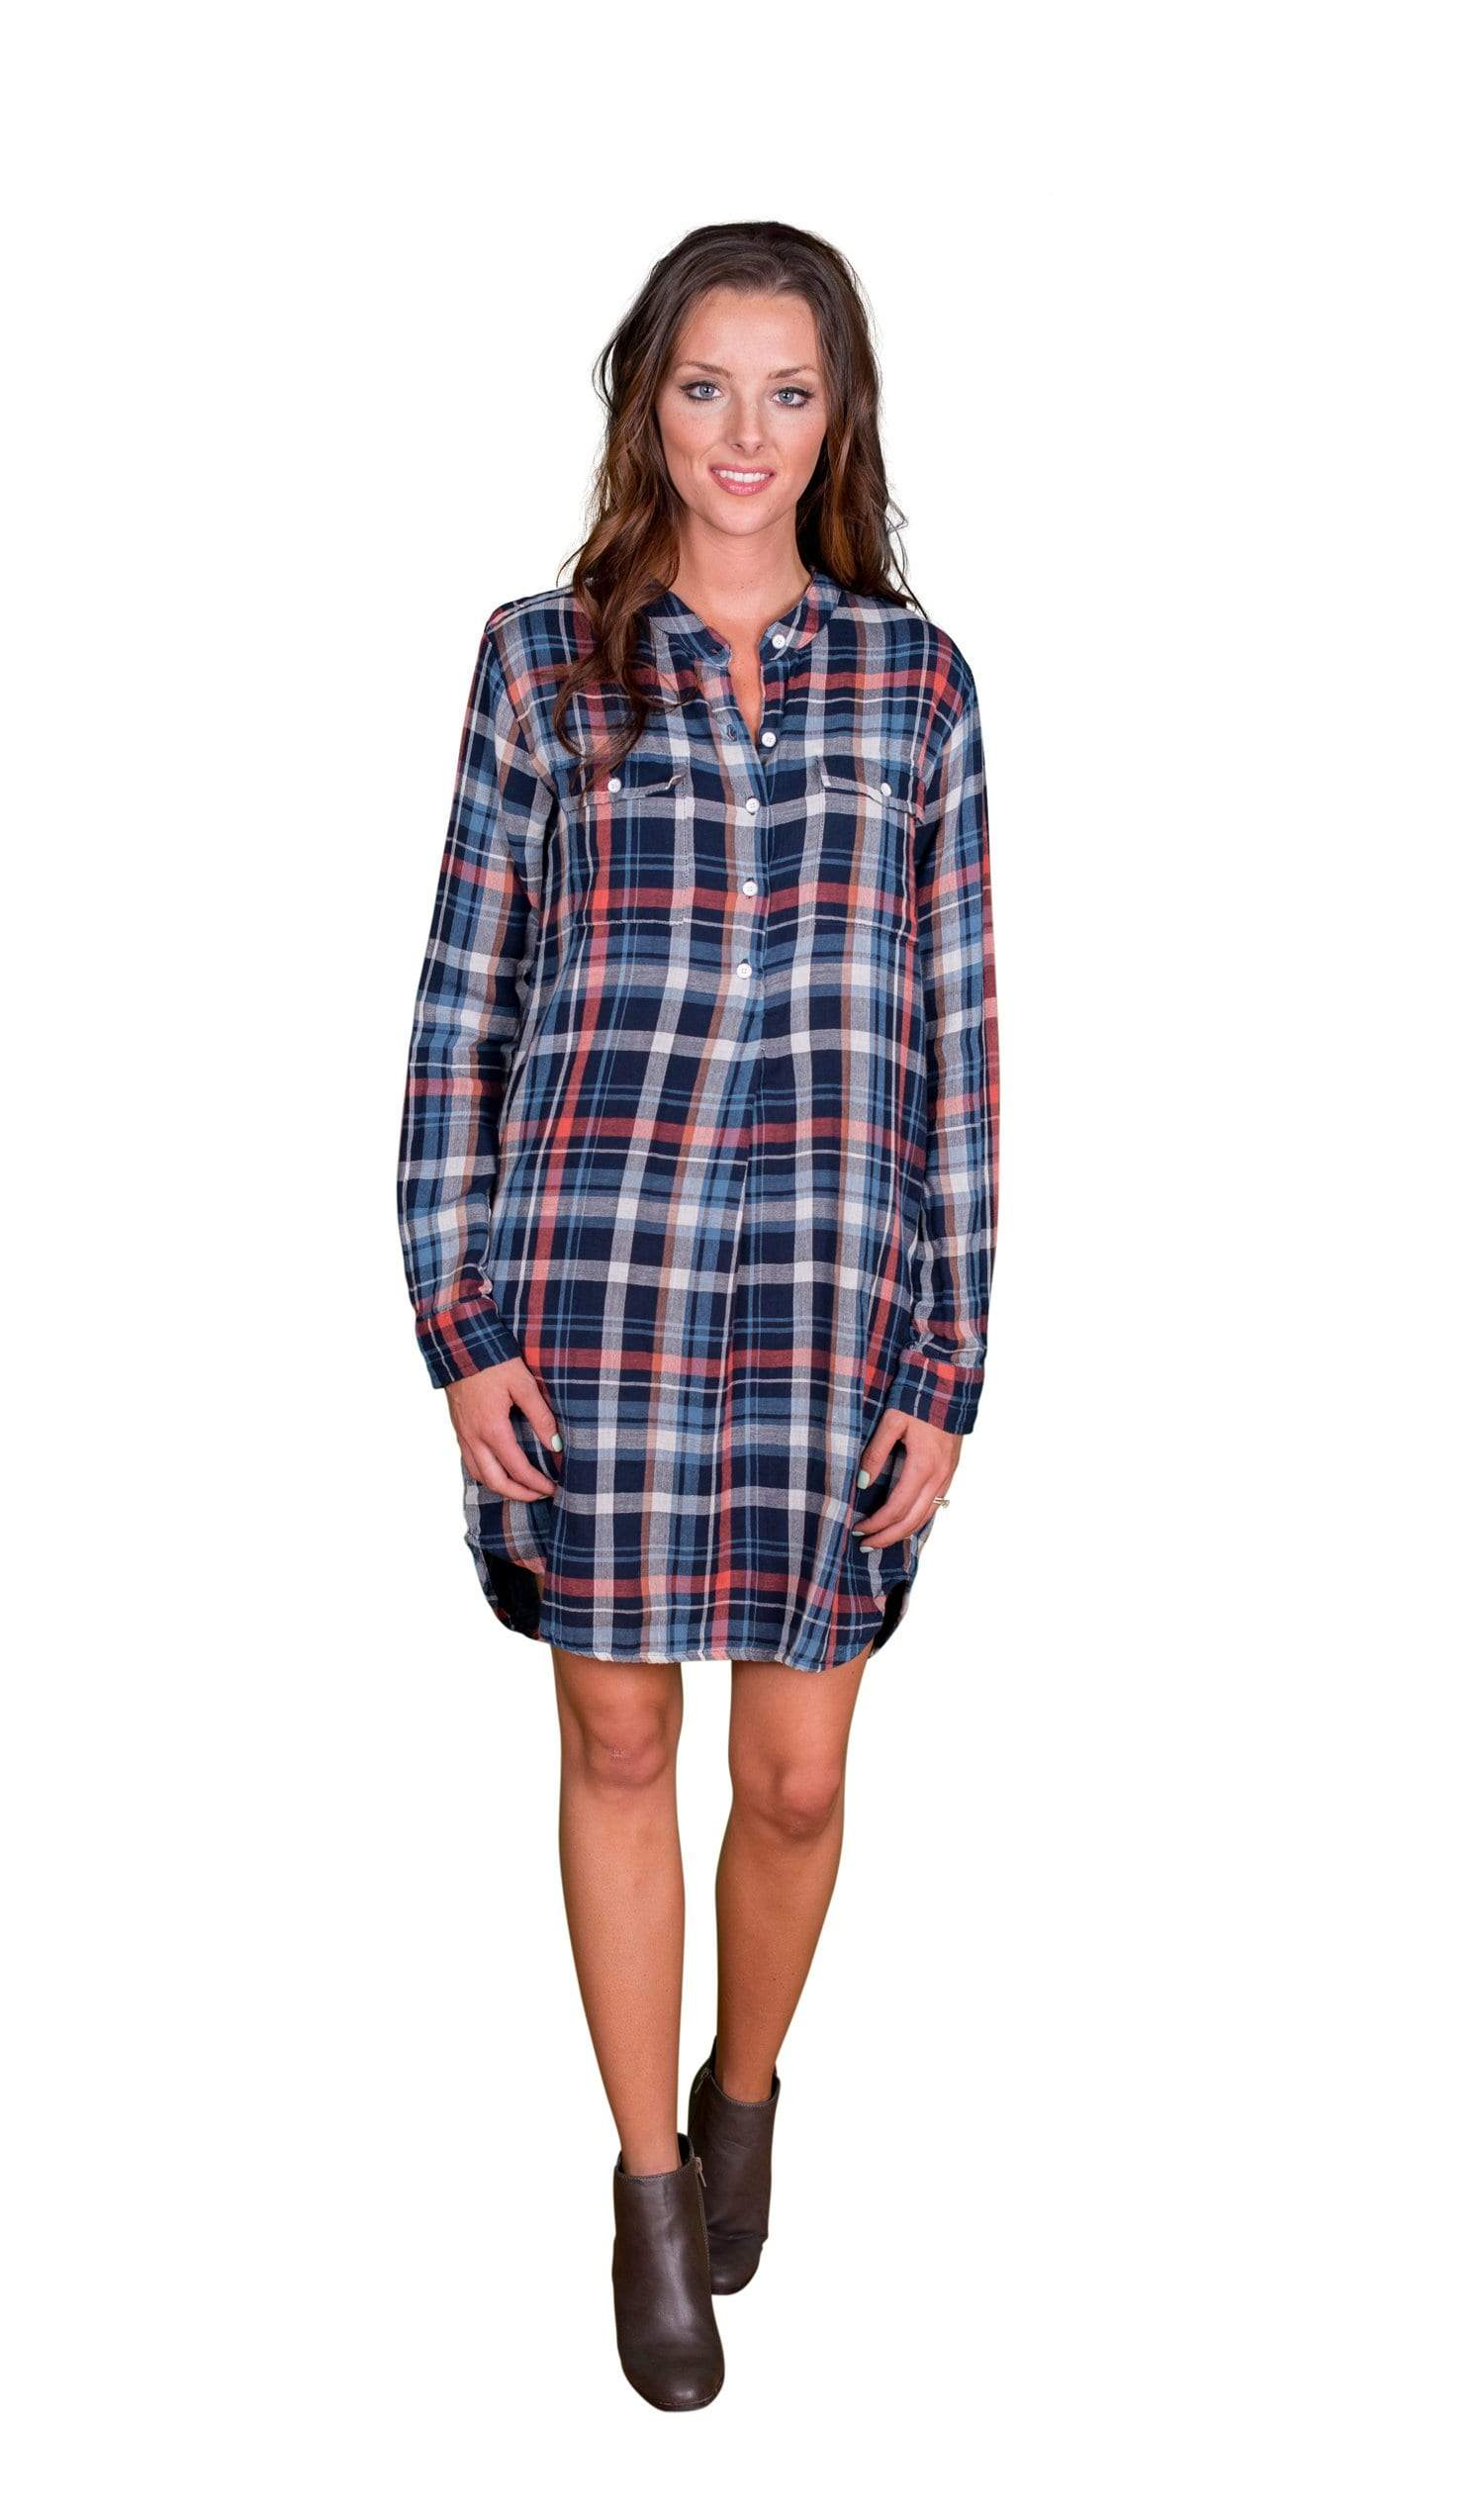 26ceb32ad02 Velvet by Graham   Spencer Gabrielle Plaid Shirt Dress - FINAL  SALE-Velvet-Vintage